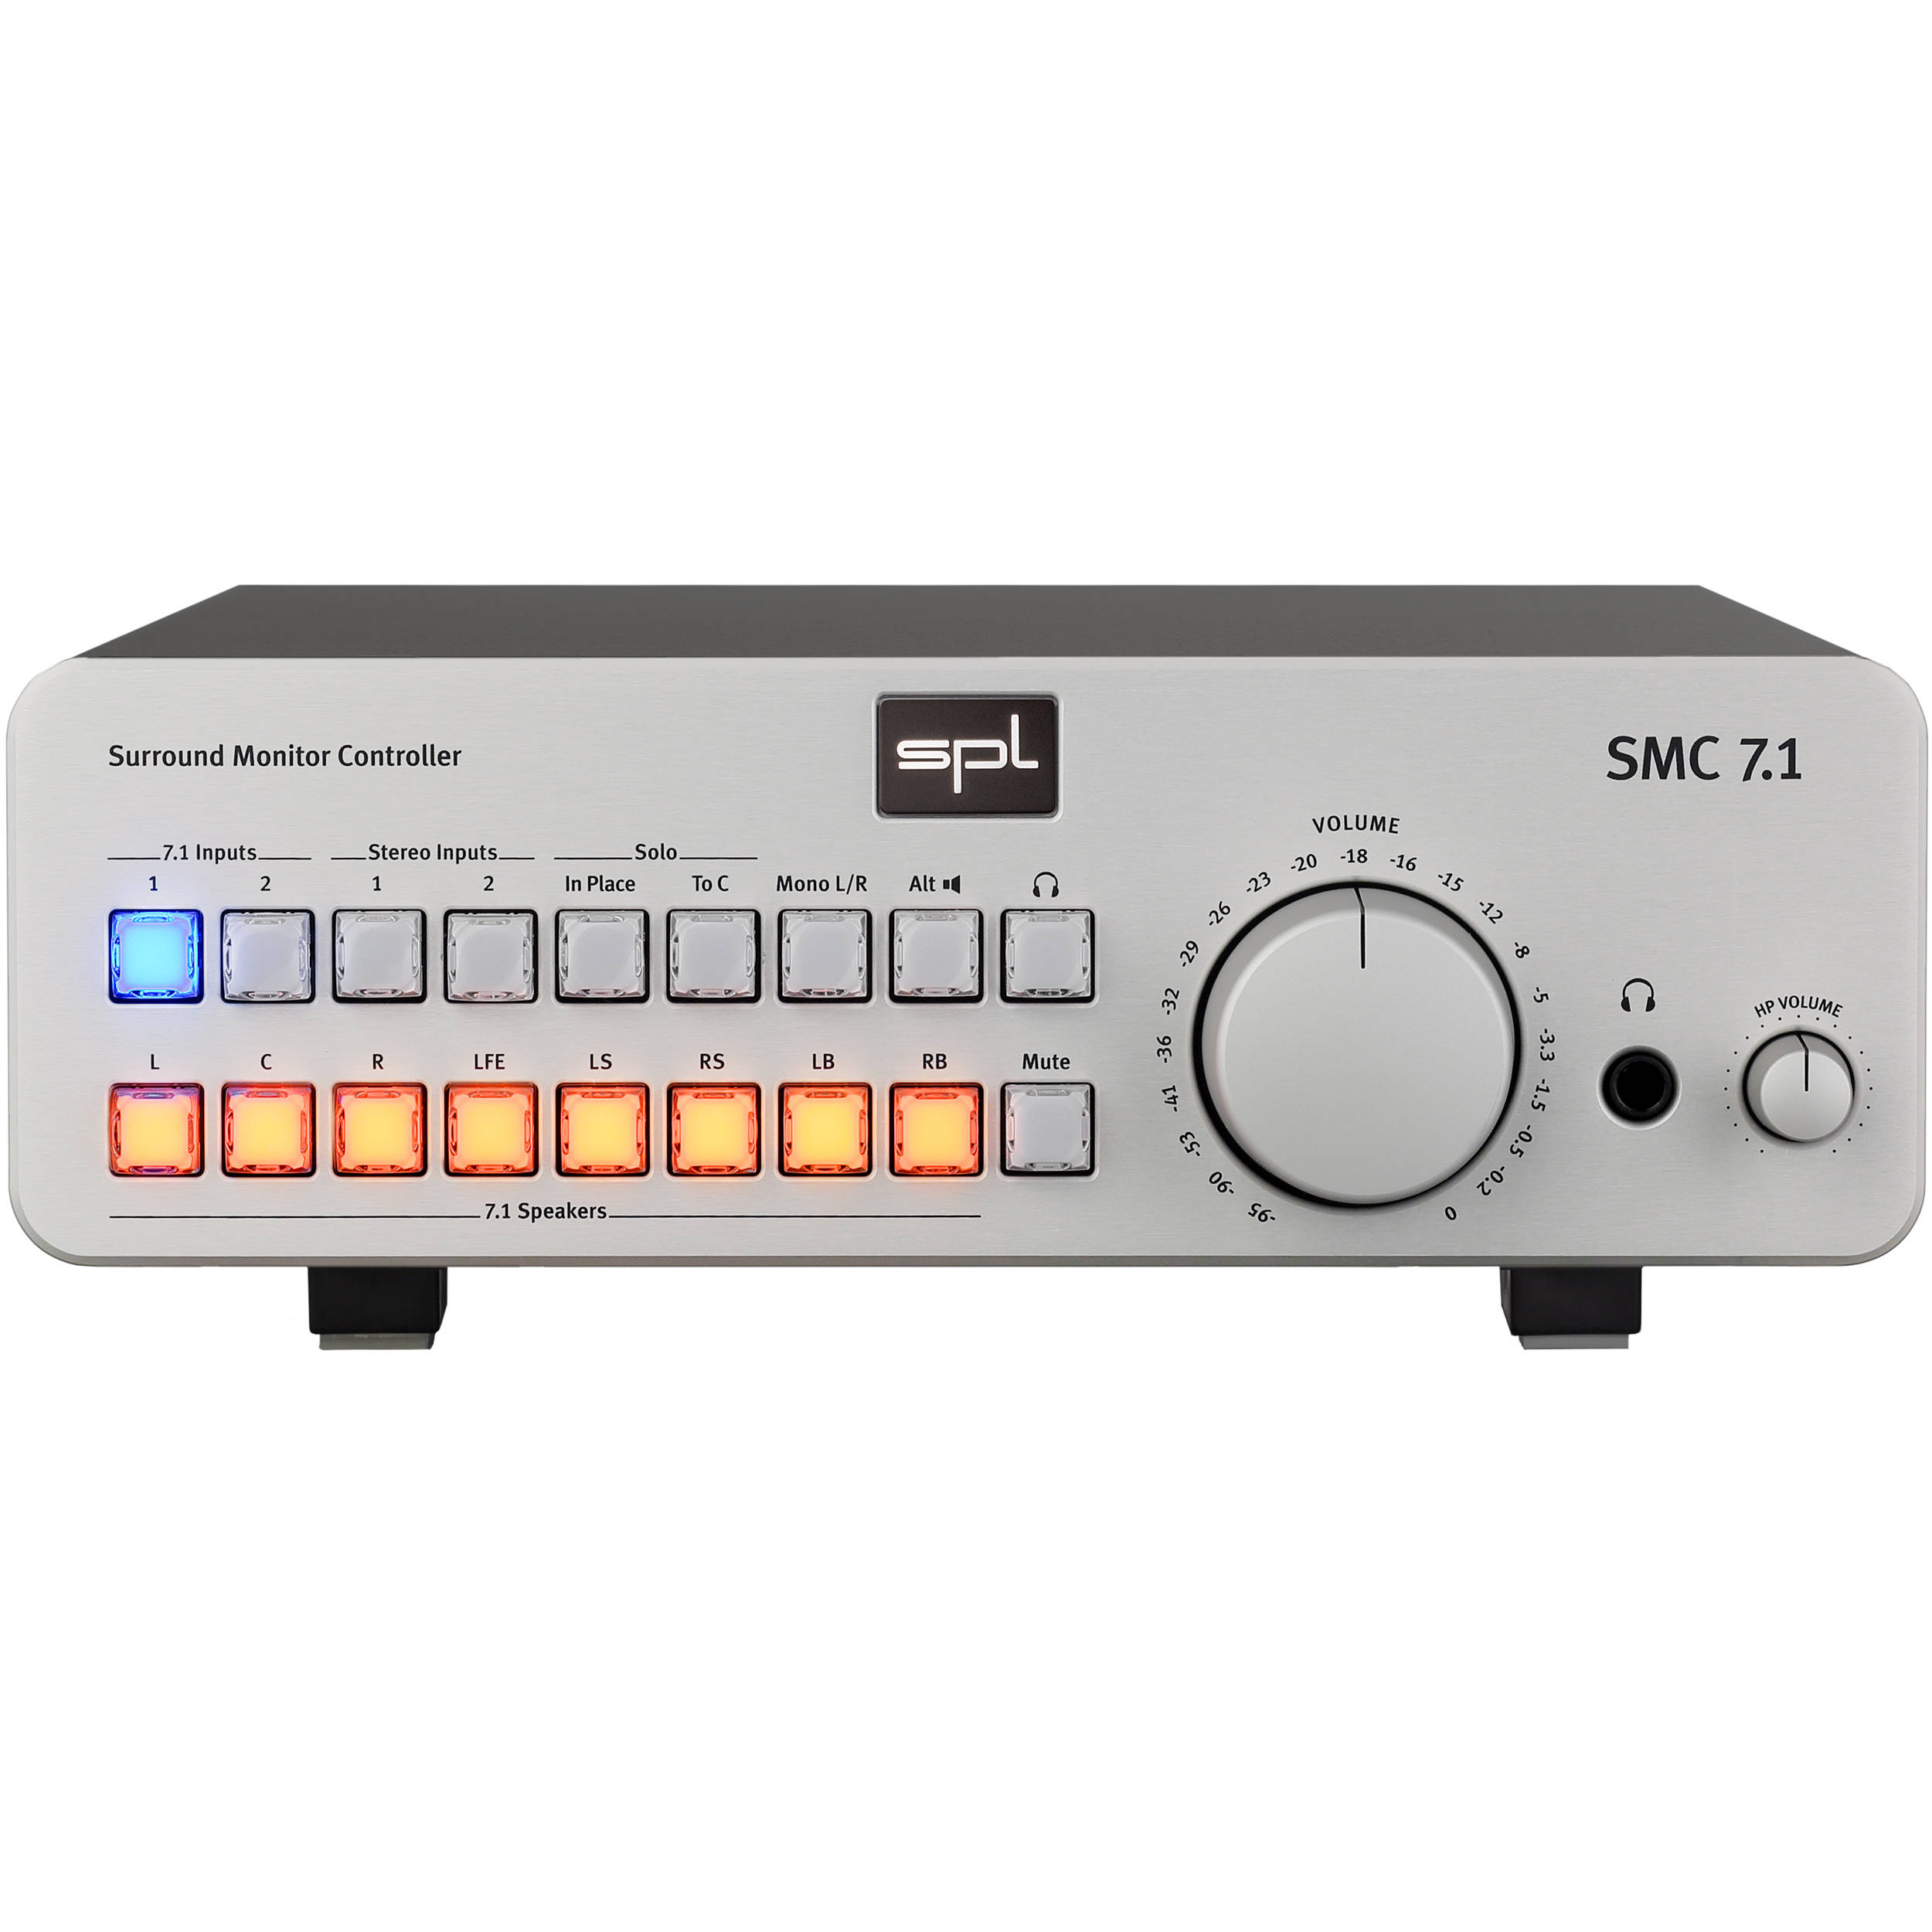 Spl Meter Bh Photo Video Sound Level Electronics Circuits For You Smc 71 Surround Monitor Controller Silver